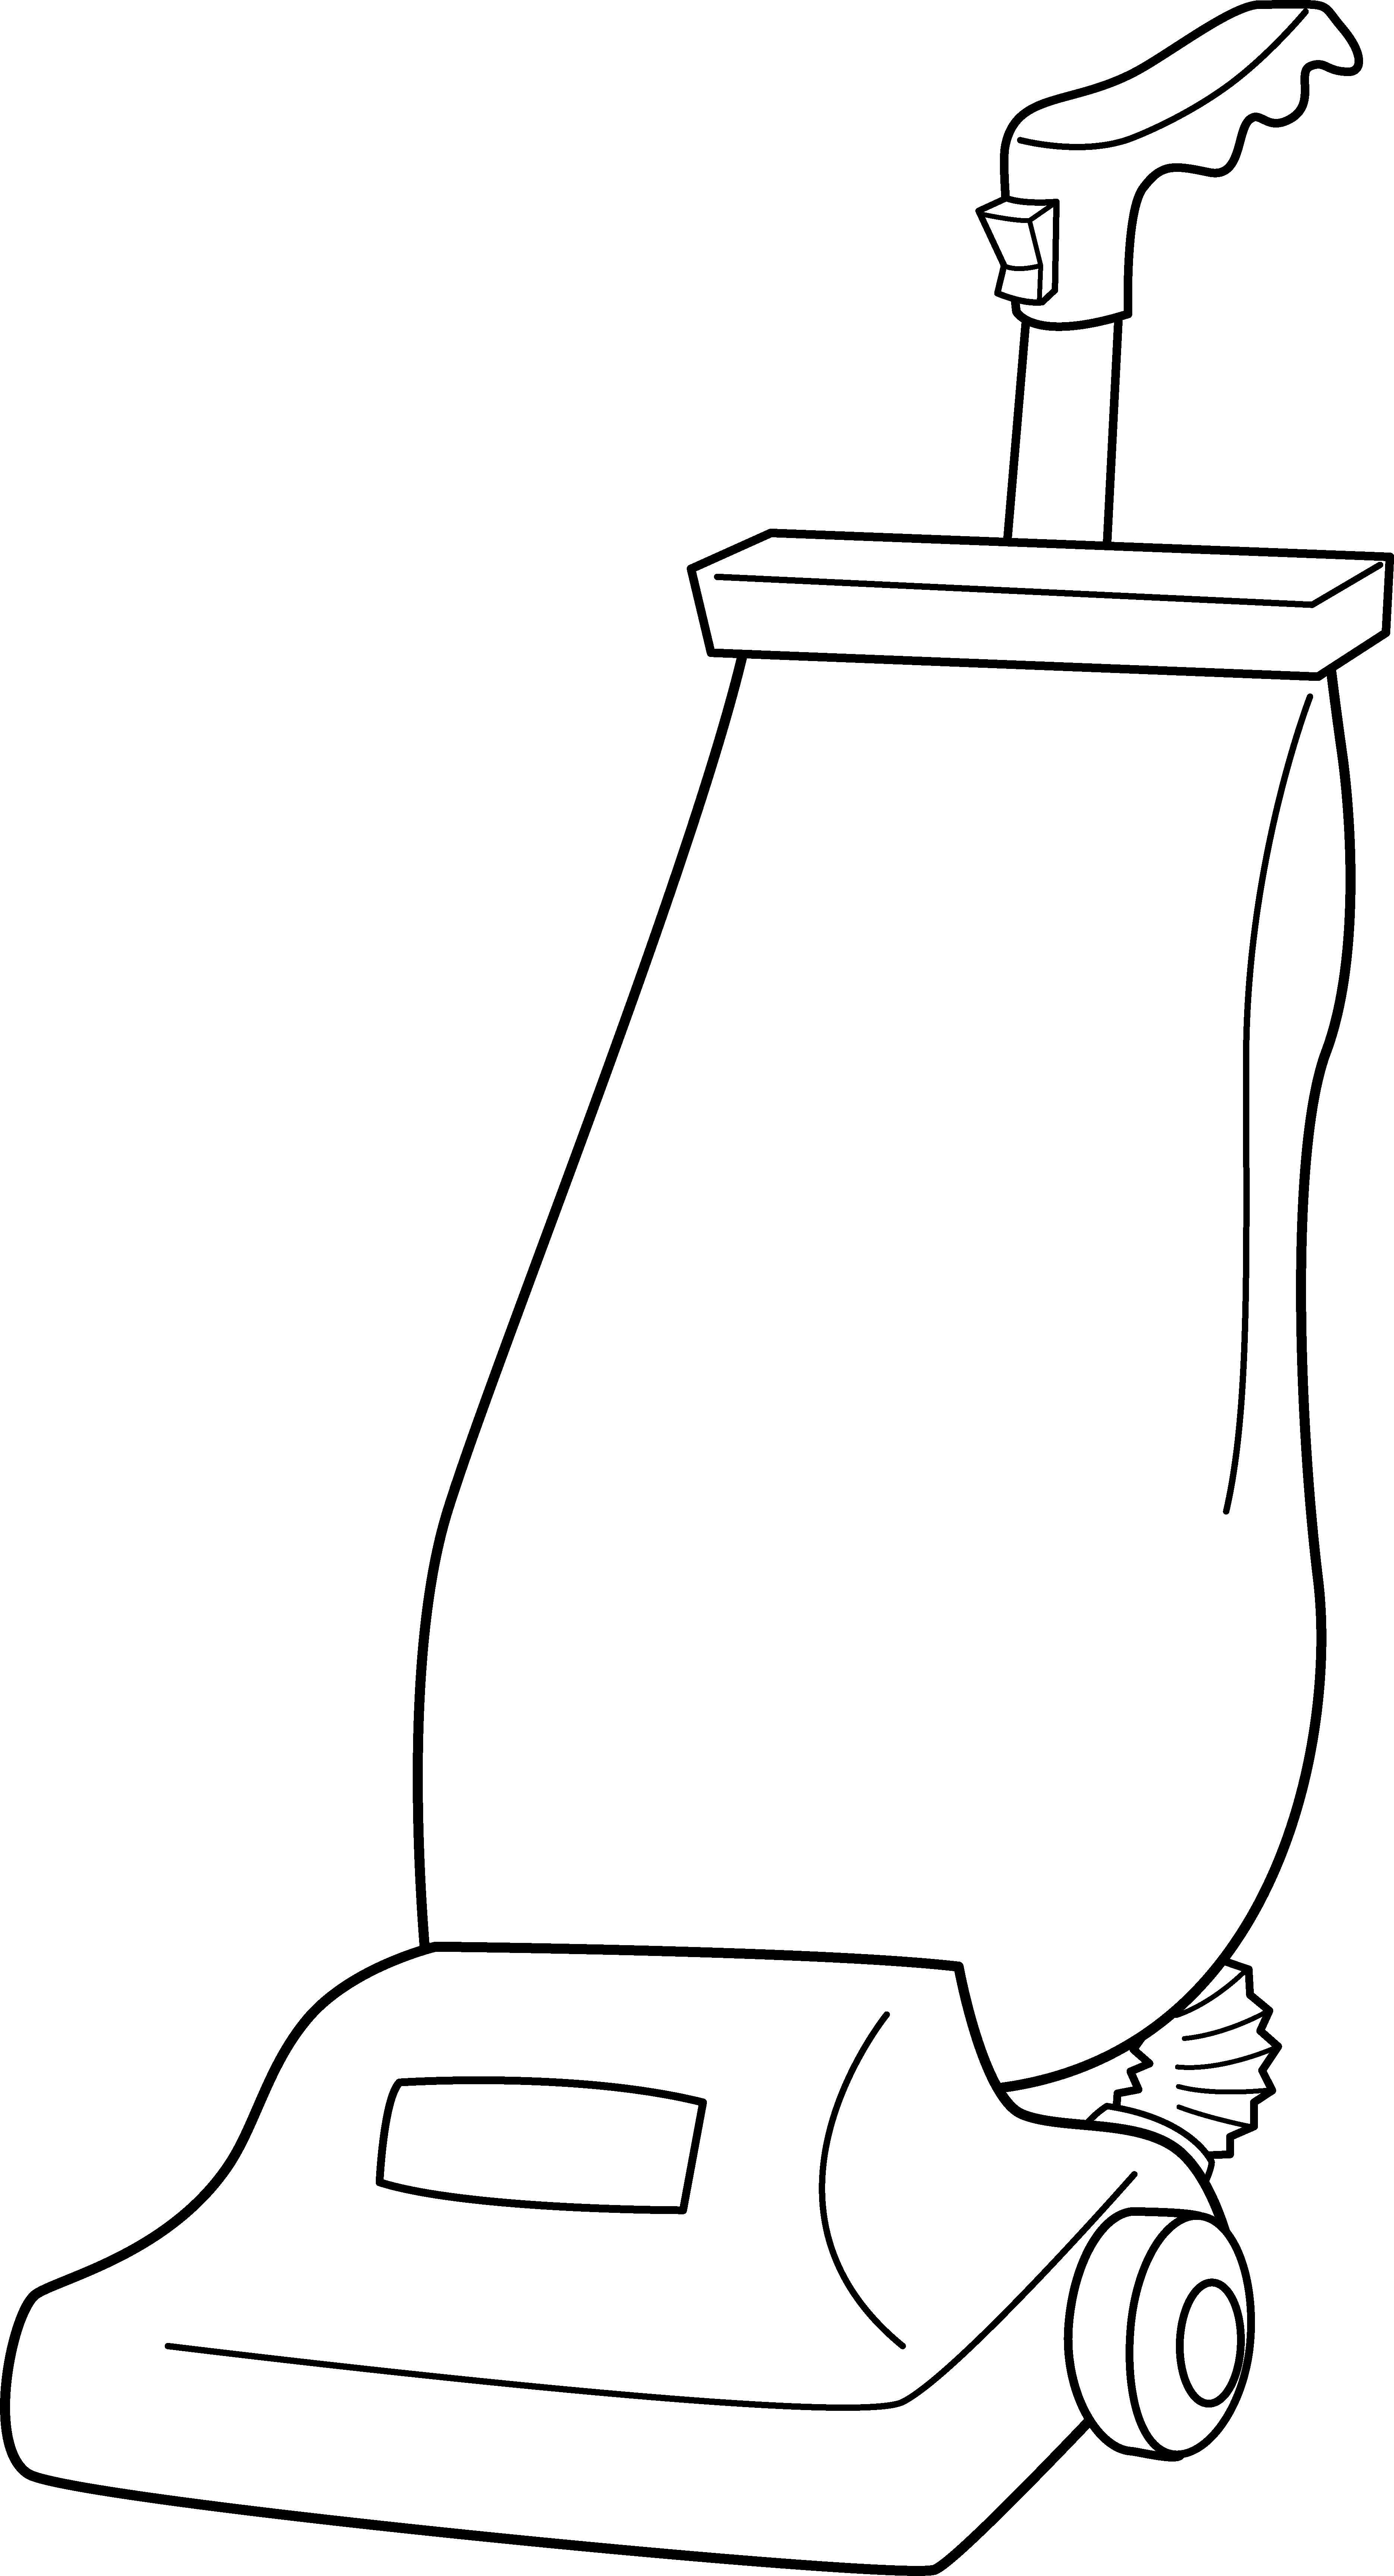 Vacuum cleaner line art. Cleaning clipart black and white